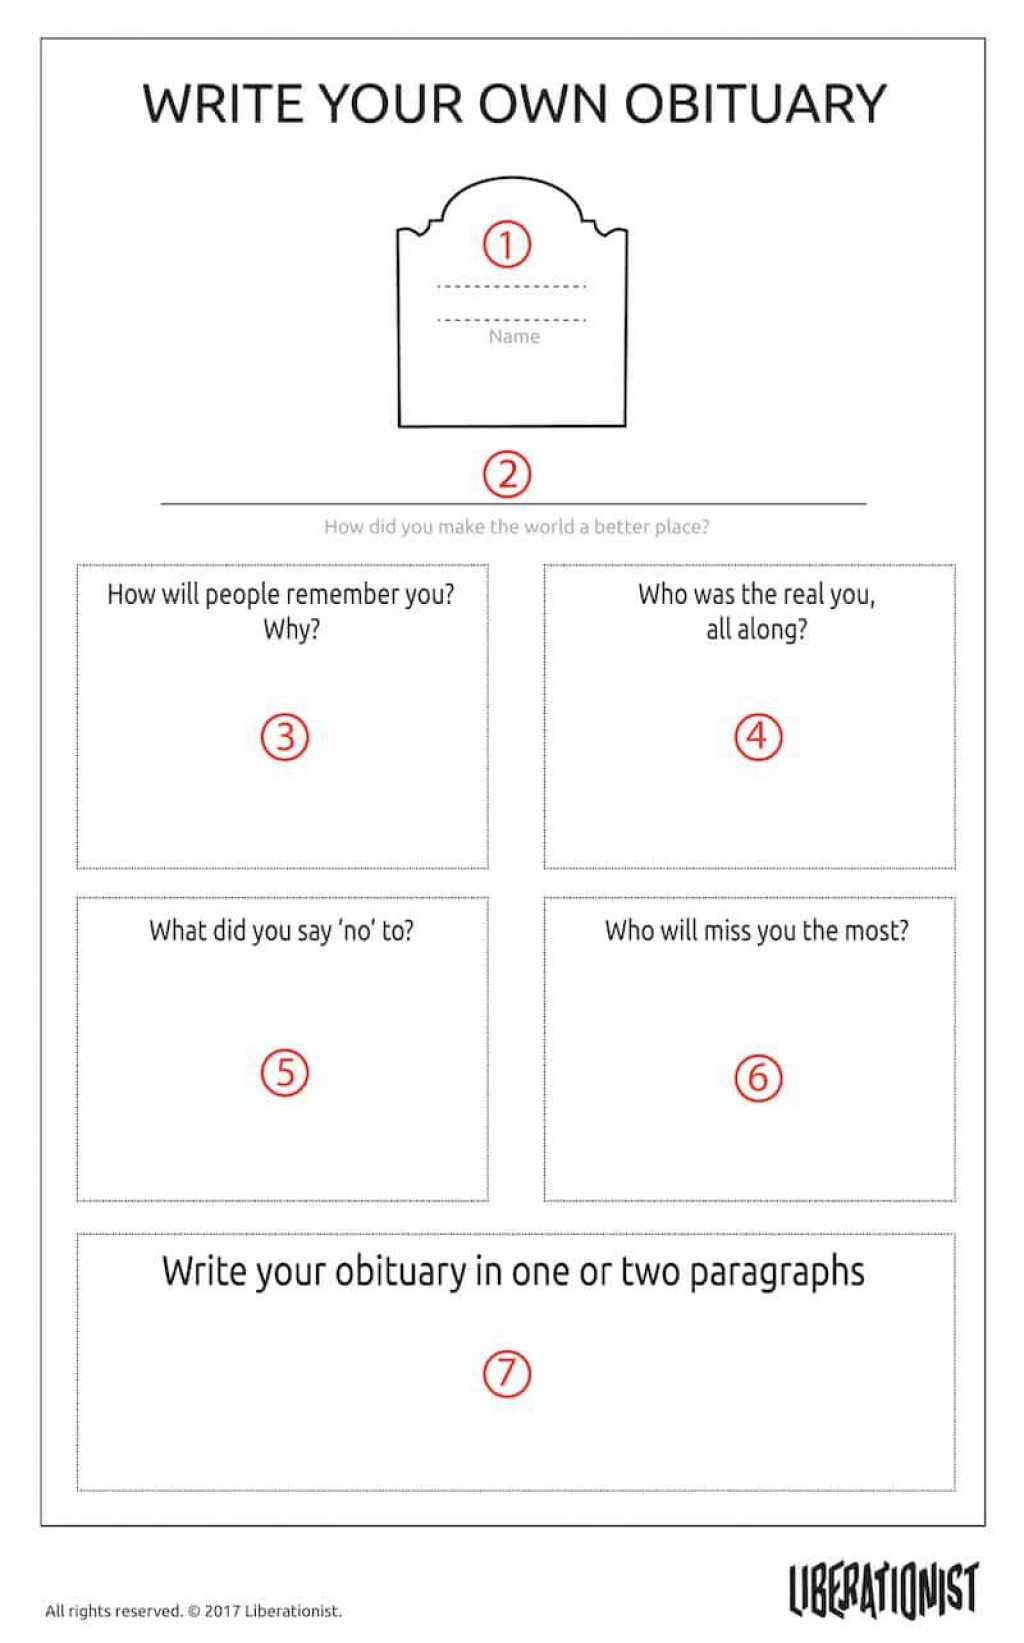 002 Unforgettable Write Your Own Obituary Template High Resolution Large